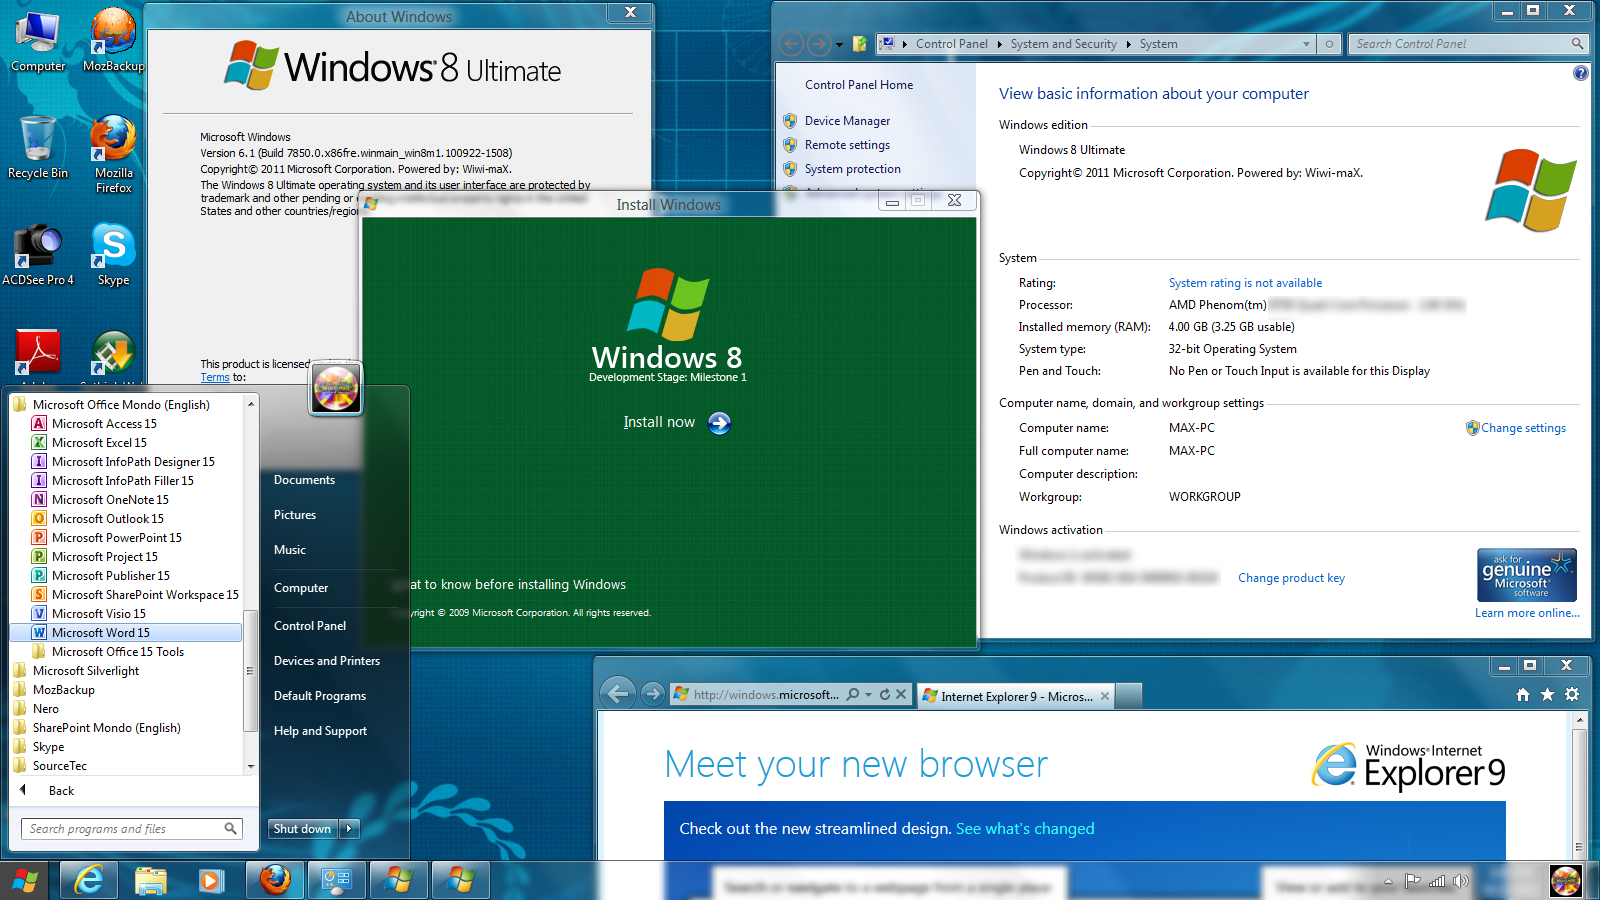 how to change view of windows 8 like windows 7